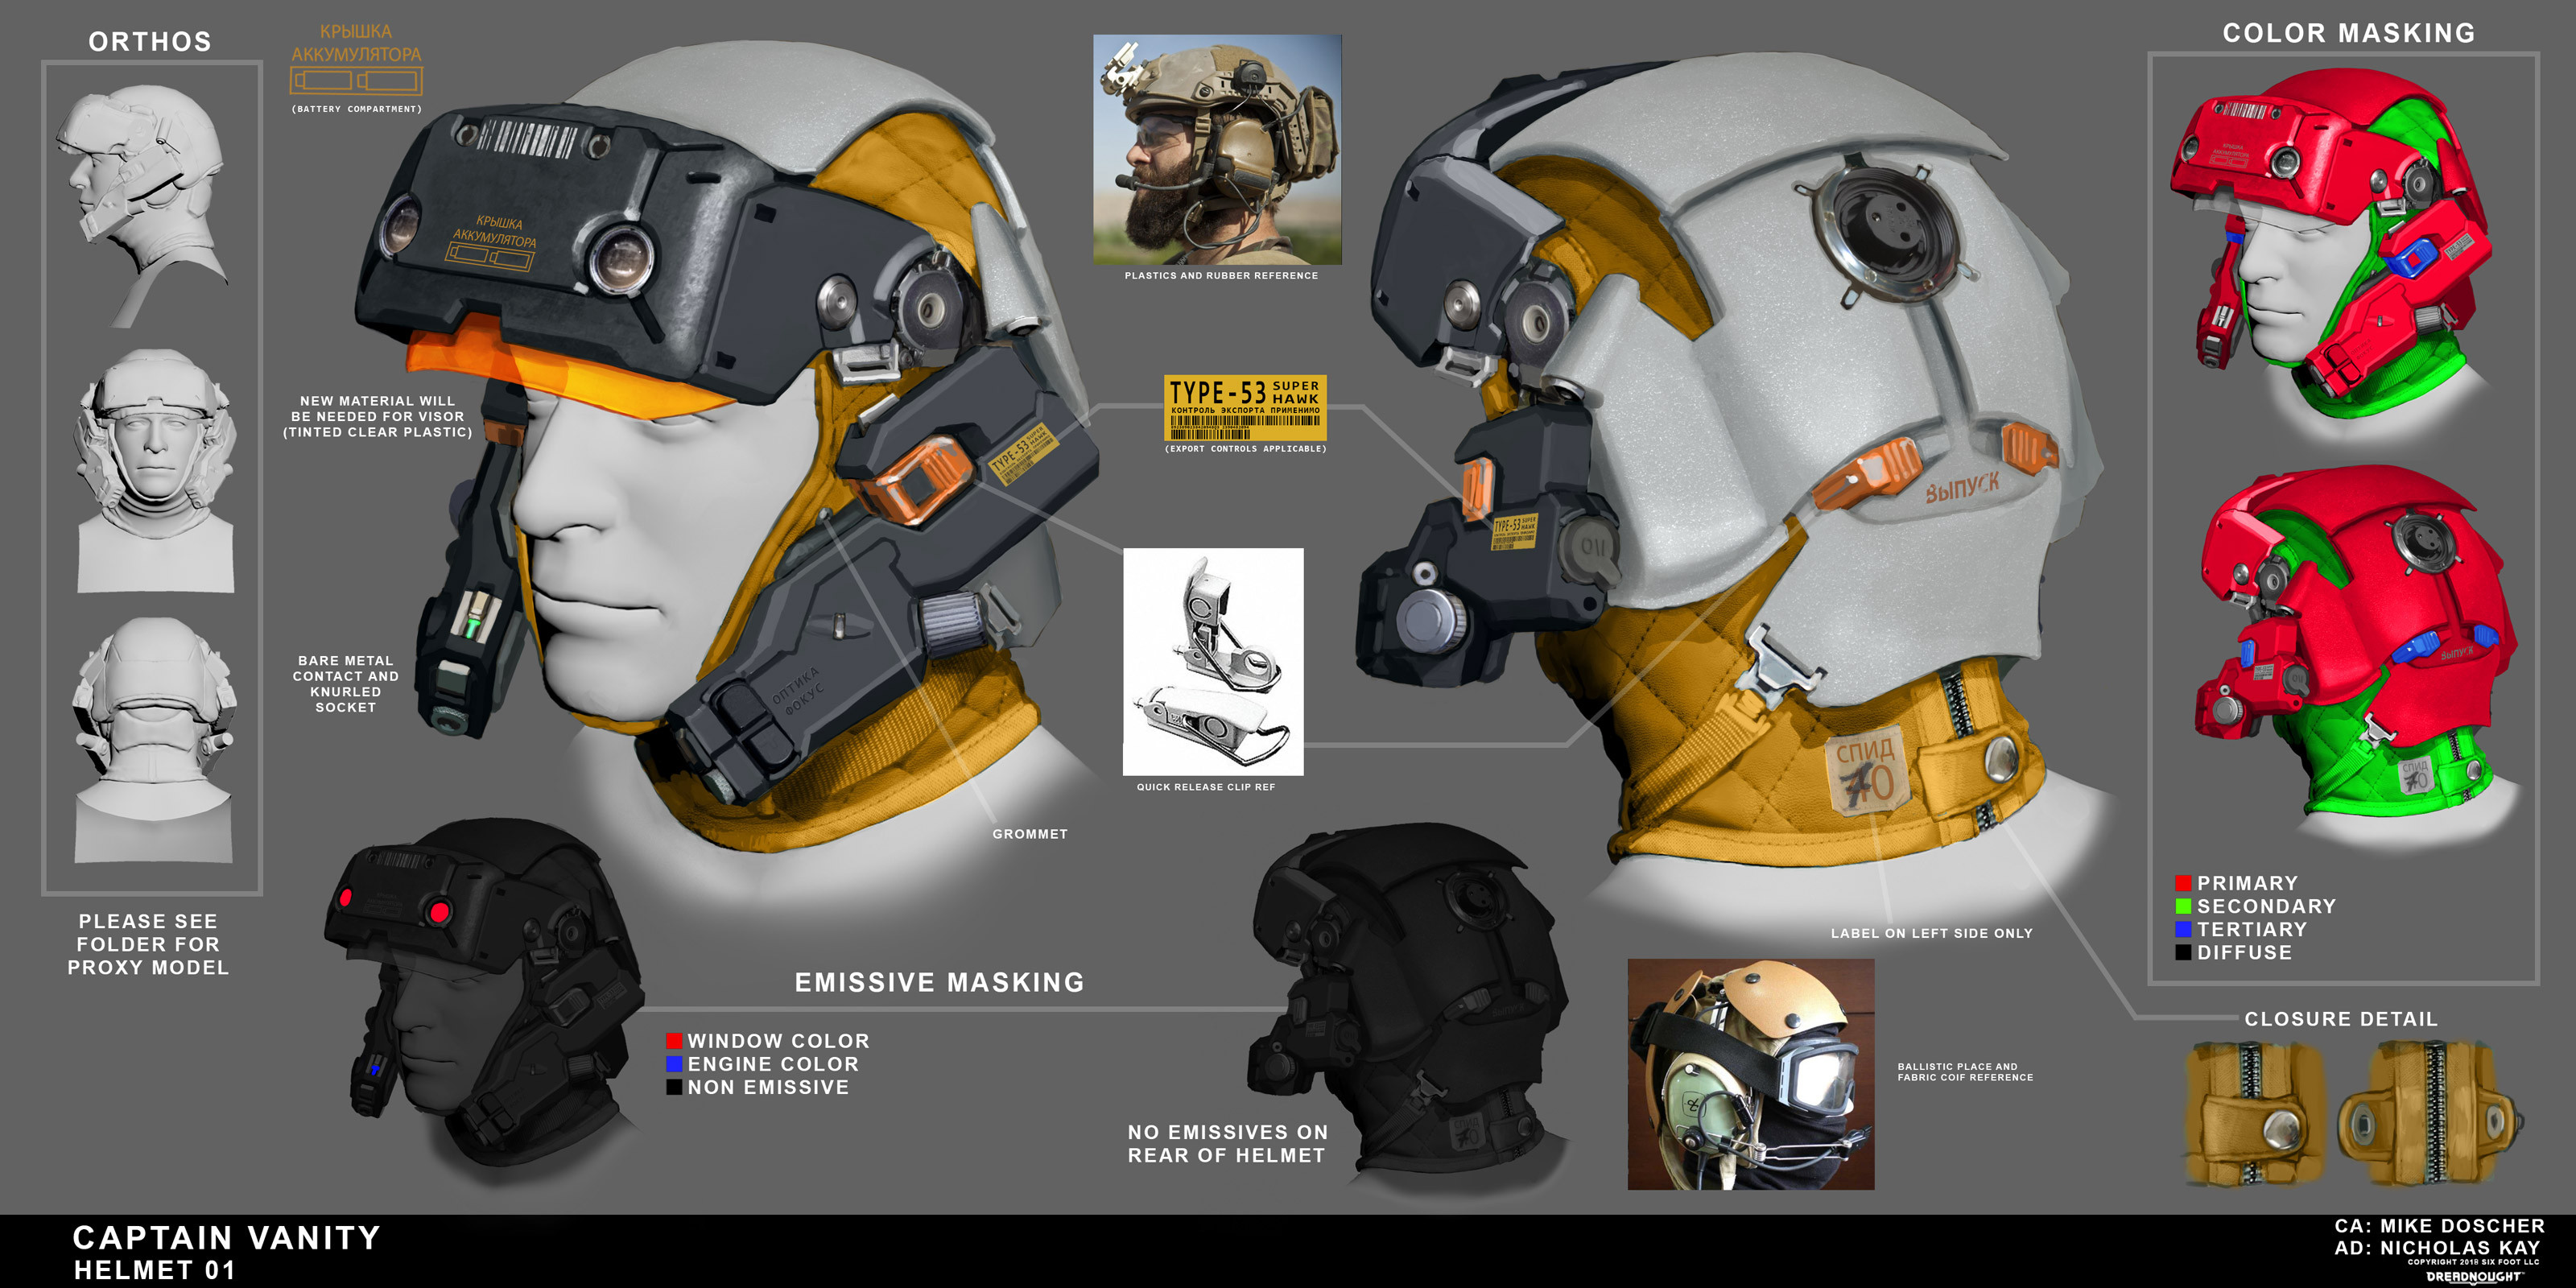 The final helmet concept, with an integral hood to avoid hair problems.